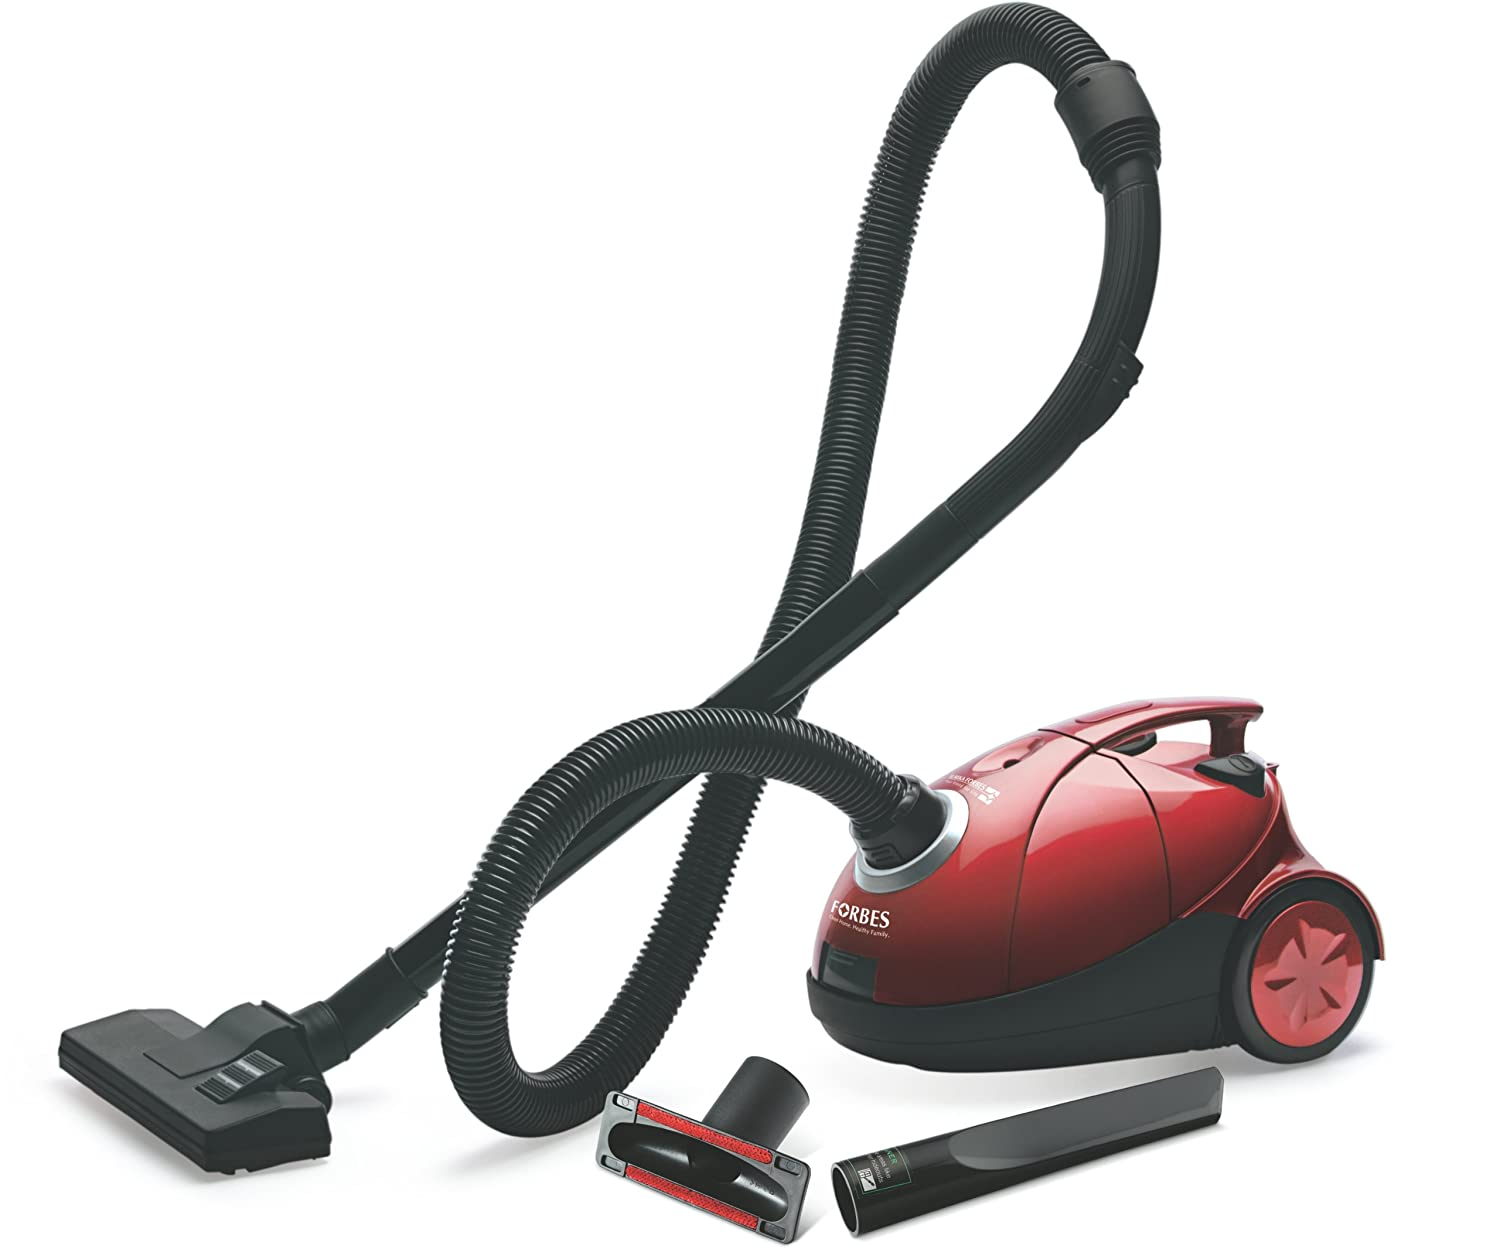 Bissell Aero Vac 2-In-1 Bagless Stick Vacuum Cleaner